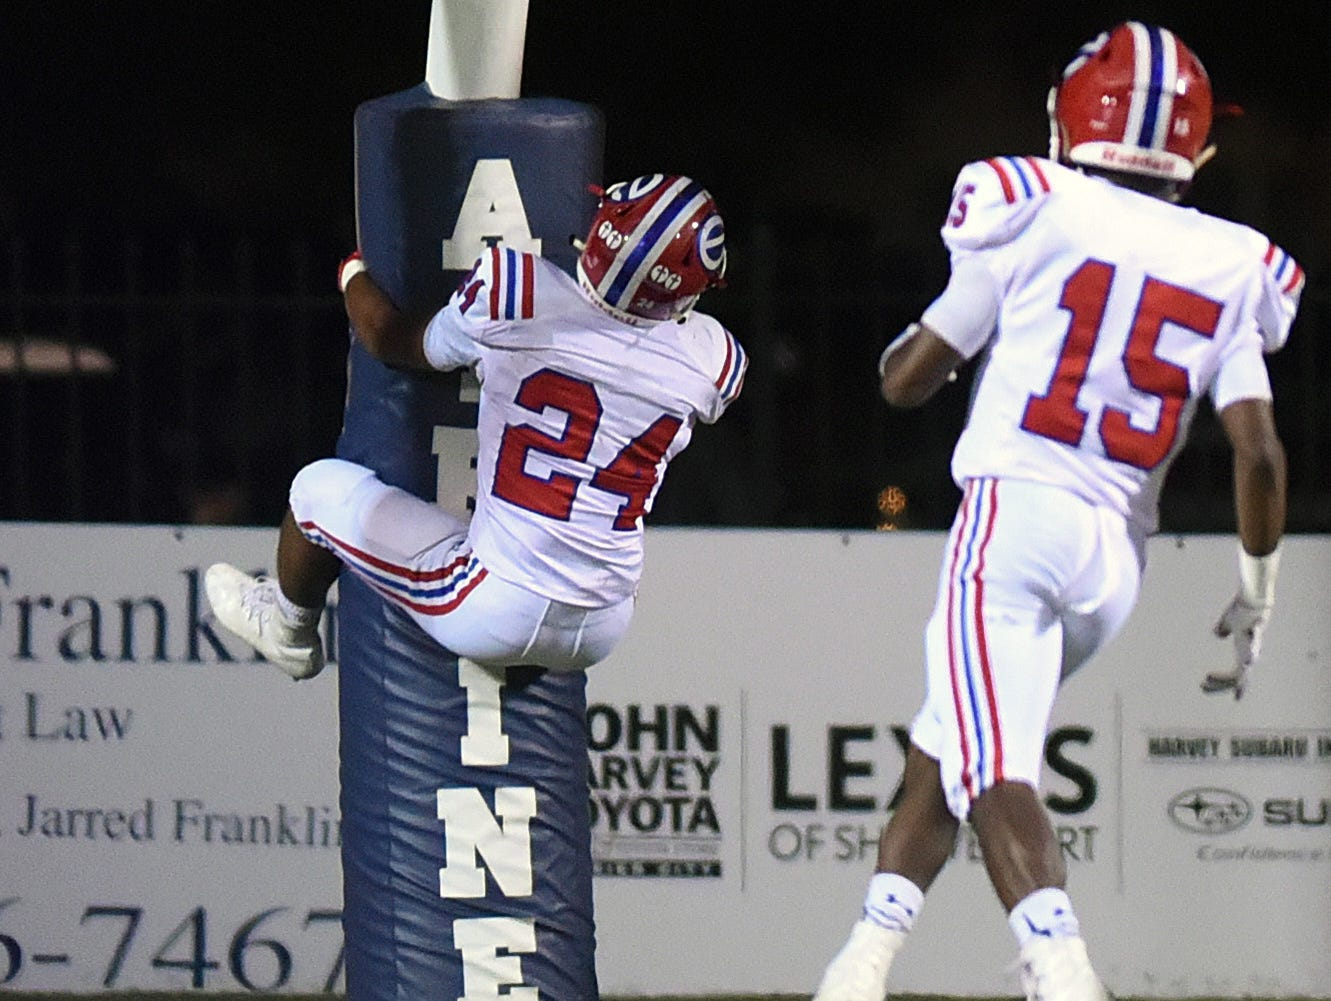 Evangel's Ar'Darius Washington jump on the goal post after scoring a touchdown against Airline in their District 1-5A matchup.